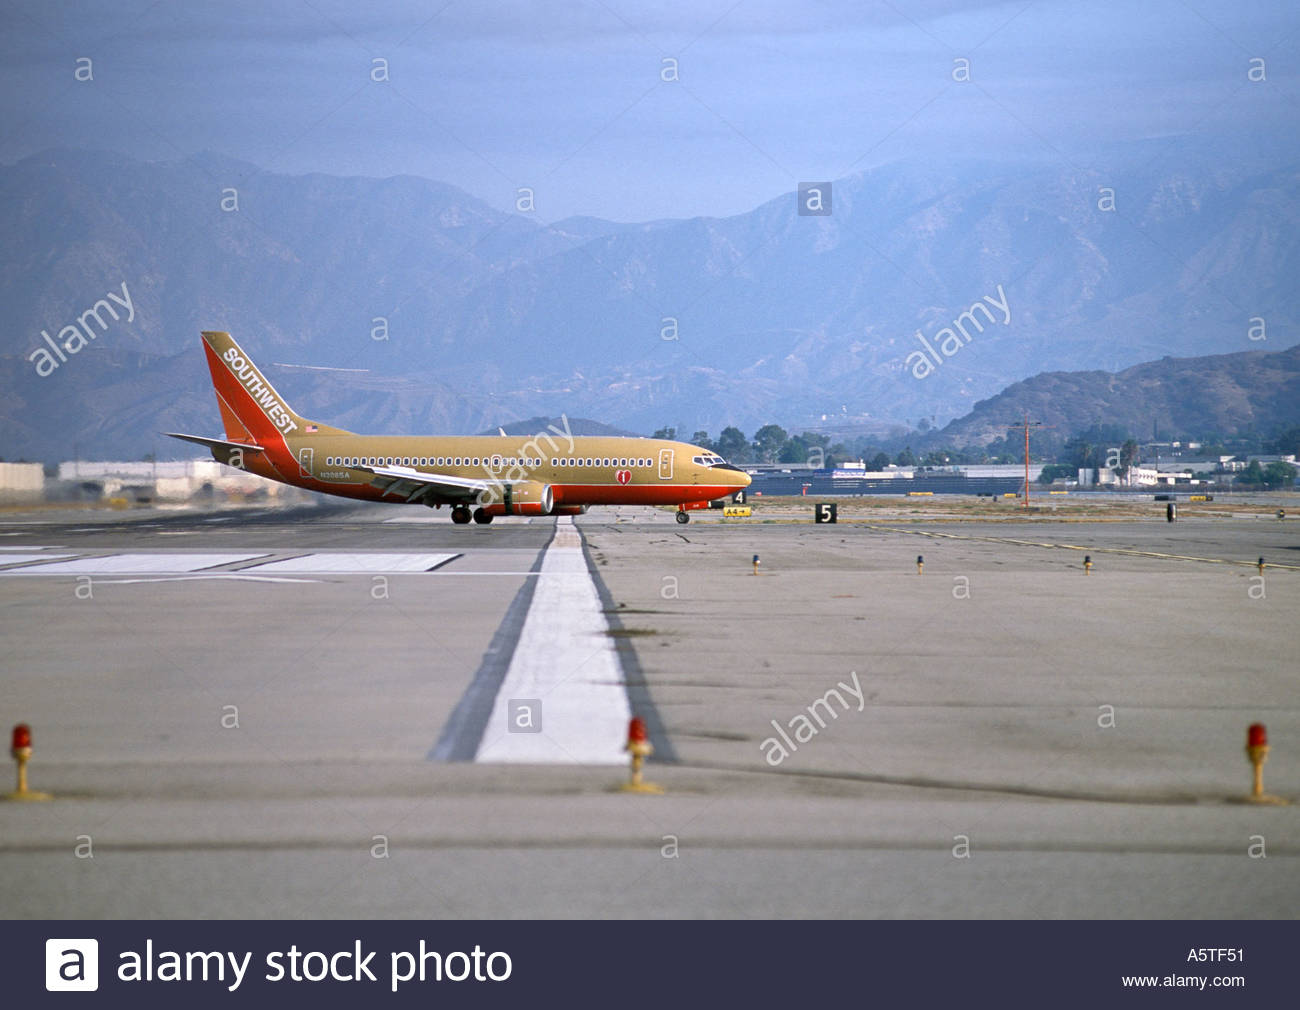 Commercial airliner on runway. - Stock Image